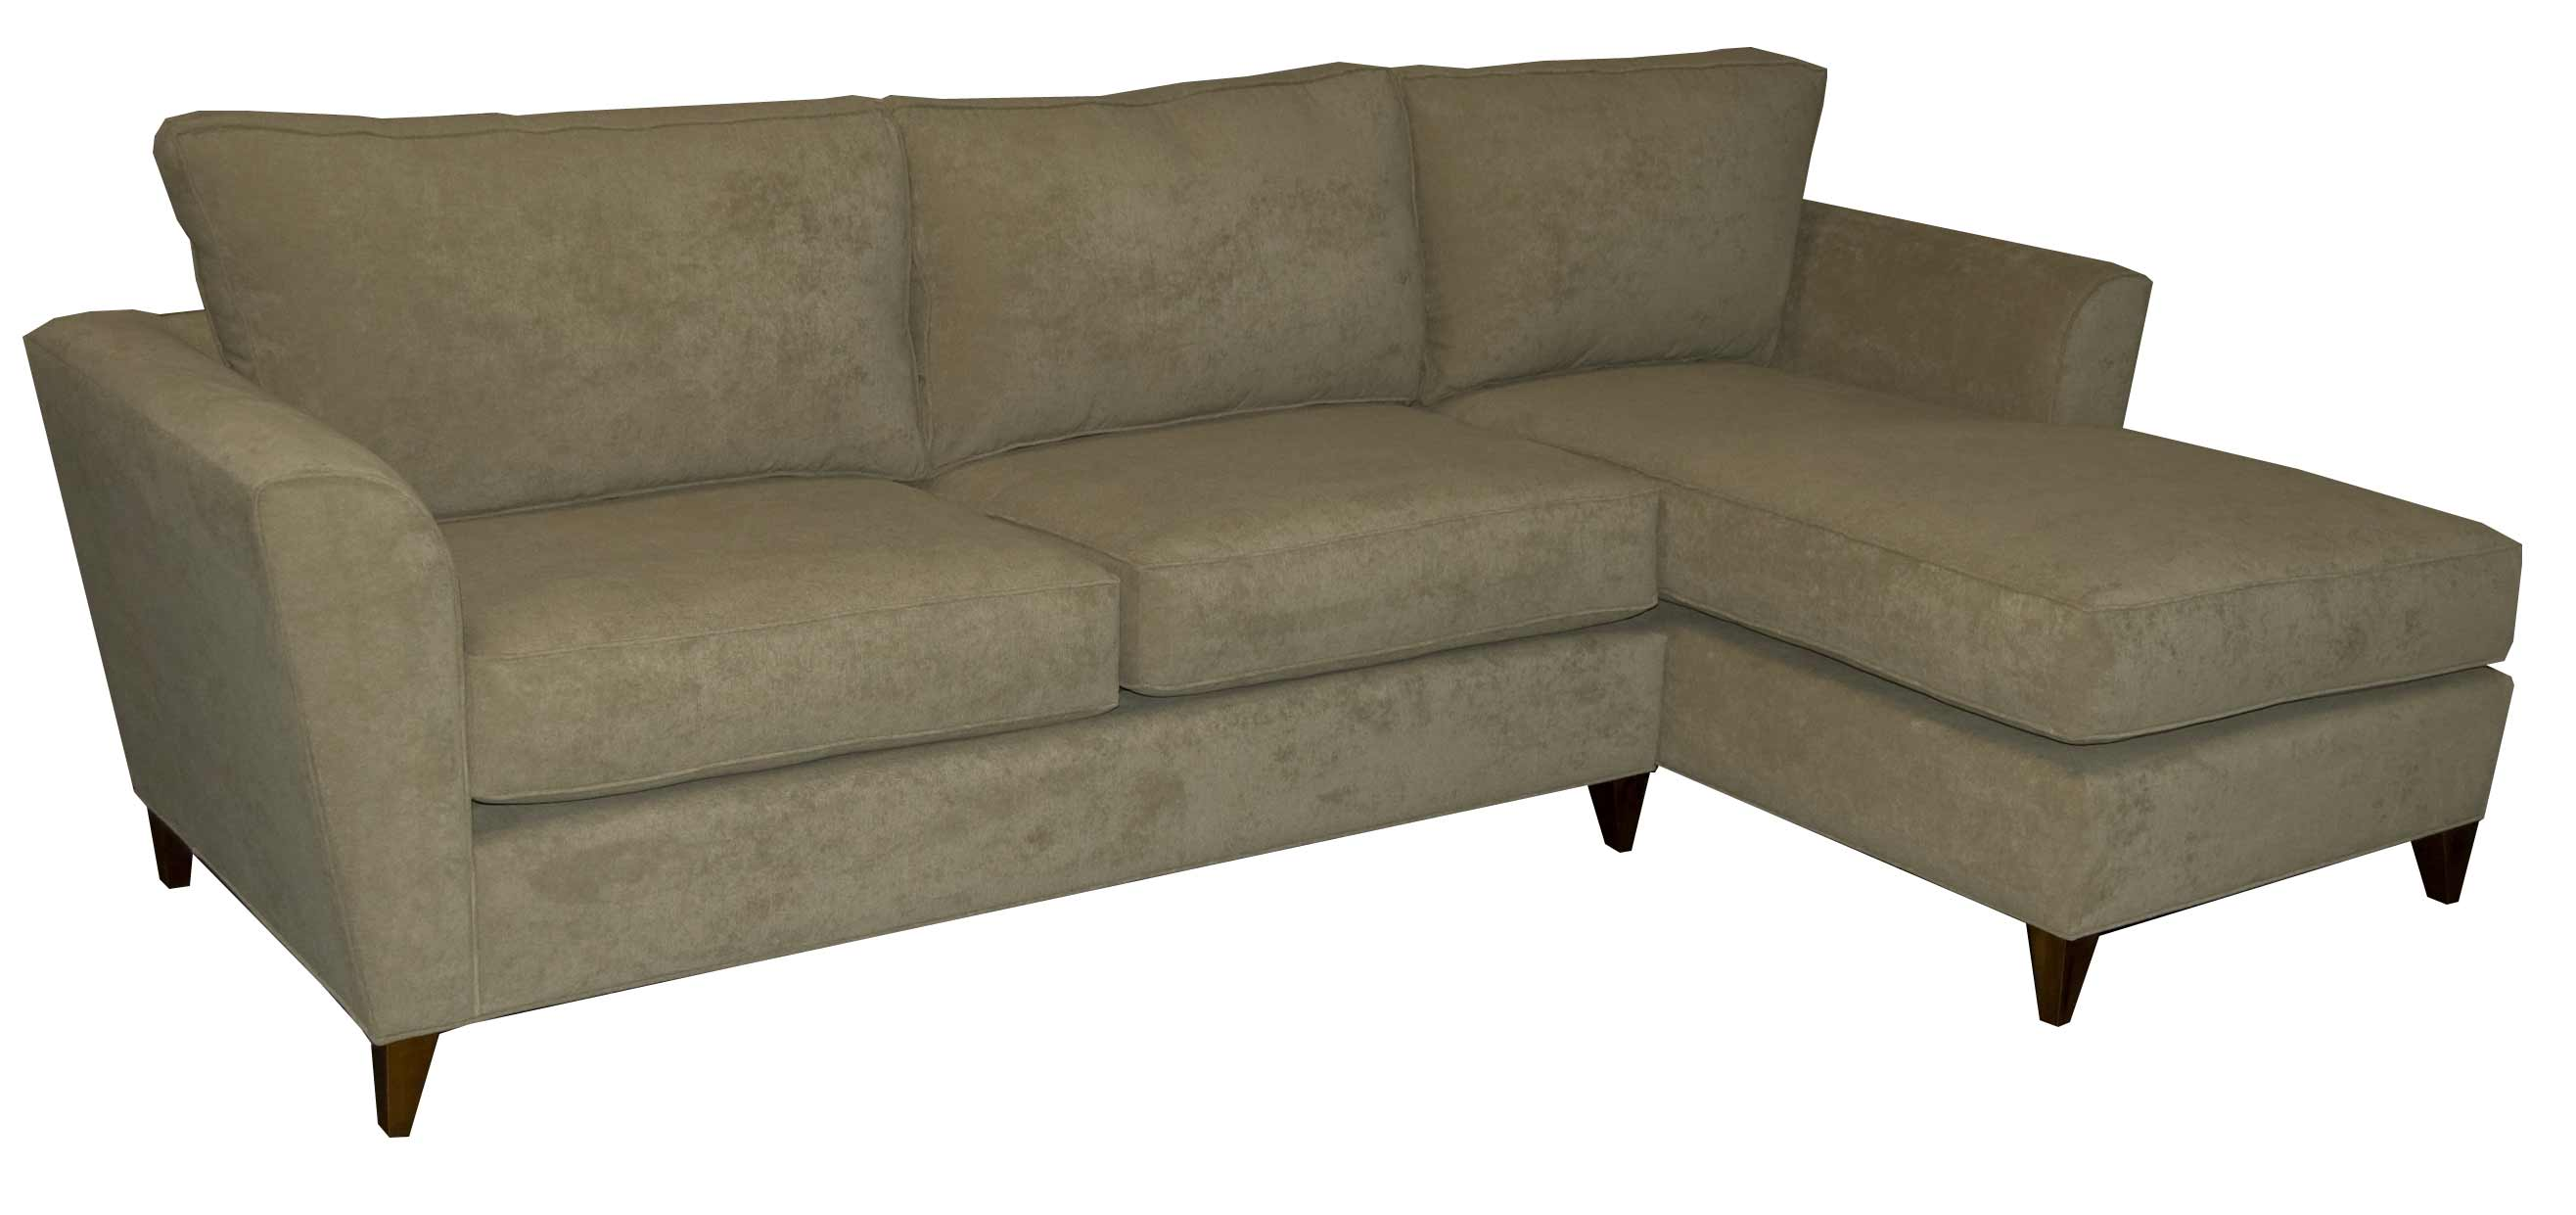 Affordable Sectionals For Enhancing Decor